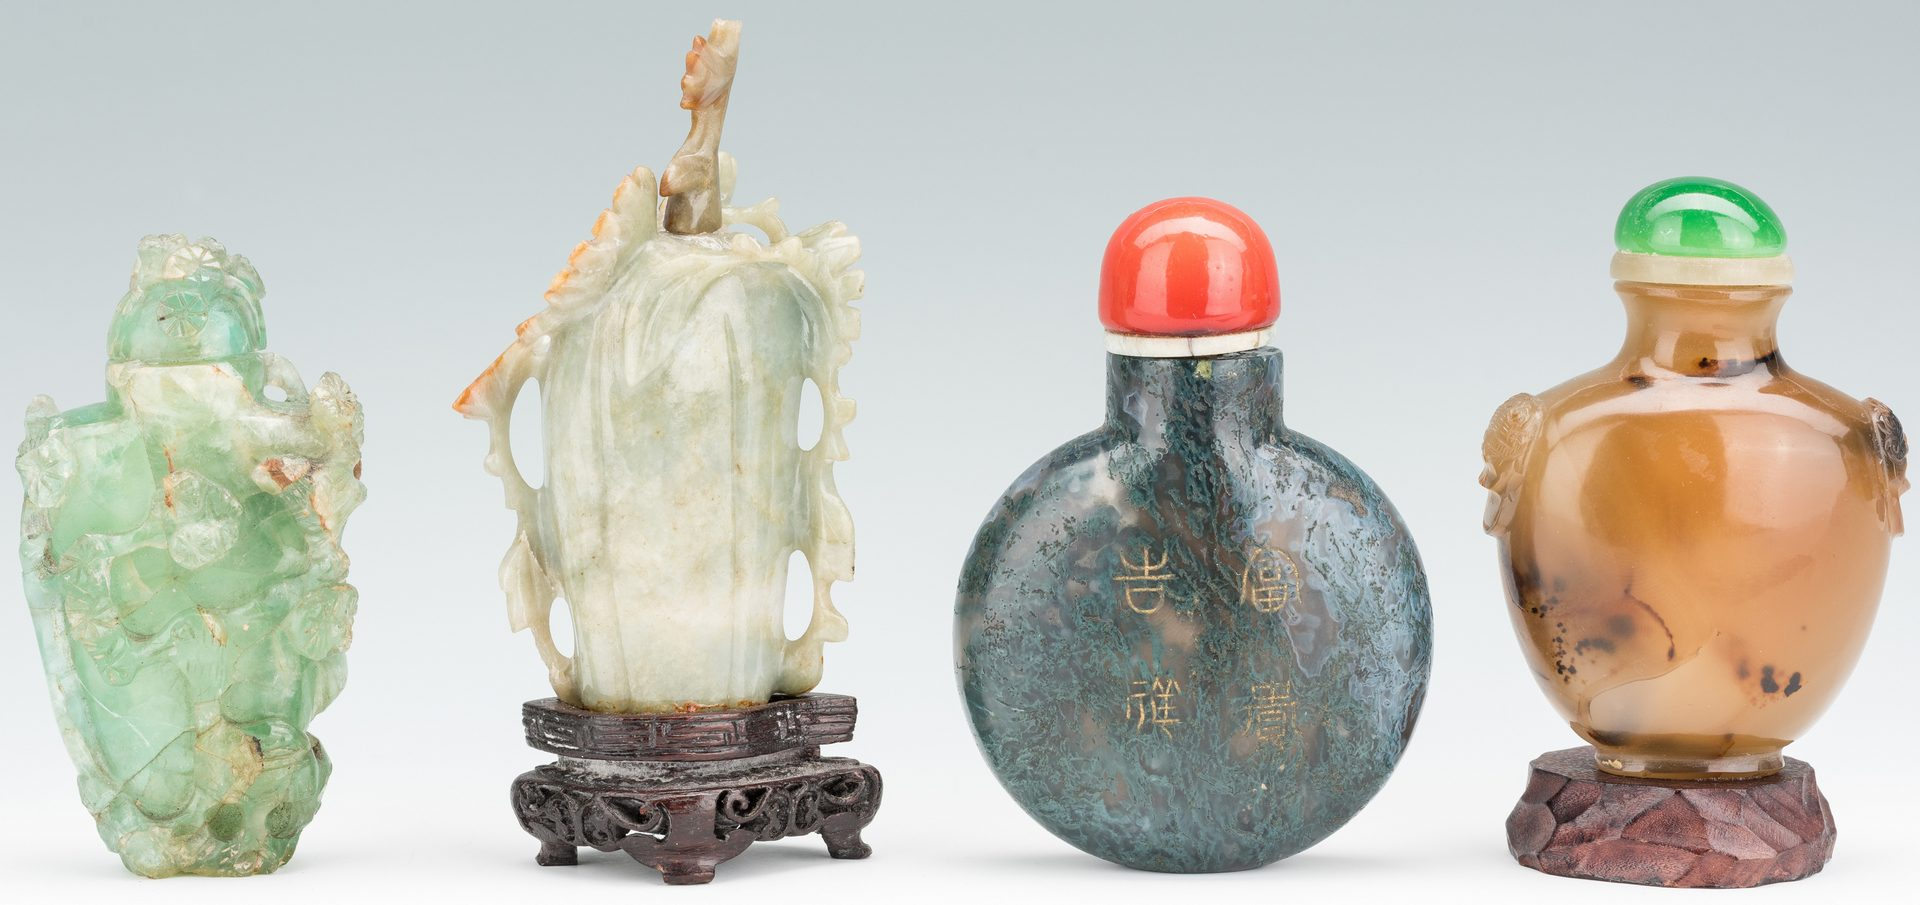 Lot 383: 4 Chinese Snuff Bottles, incl. 1 Jade